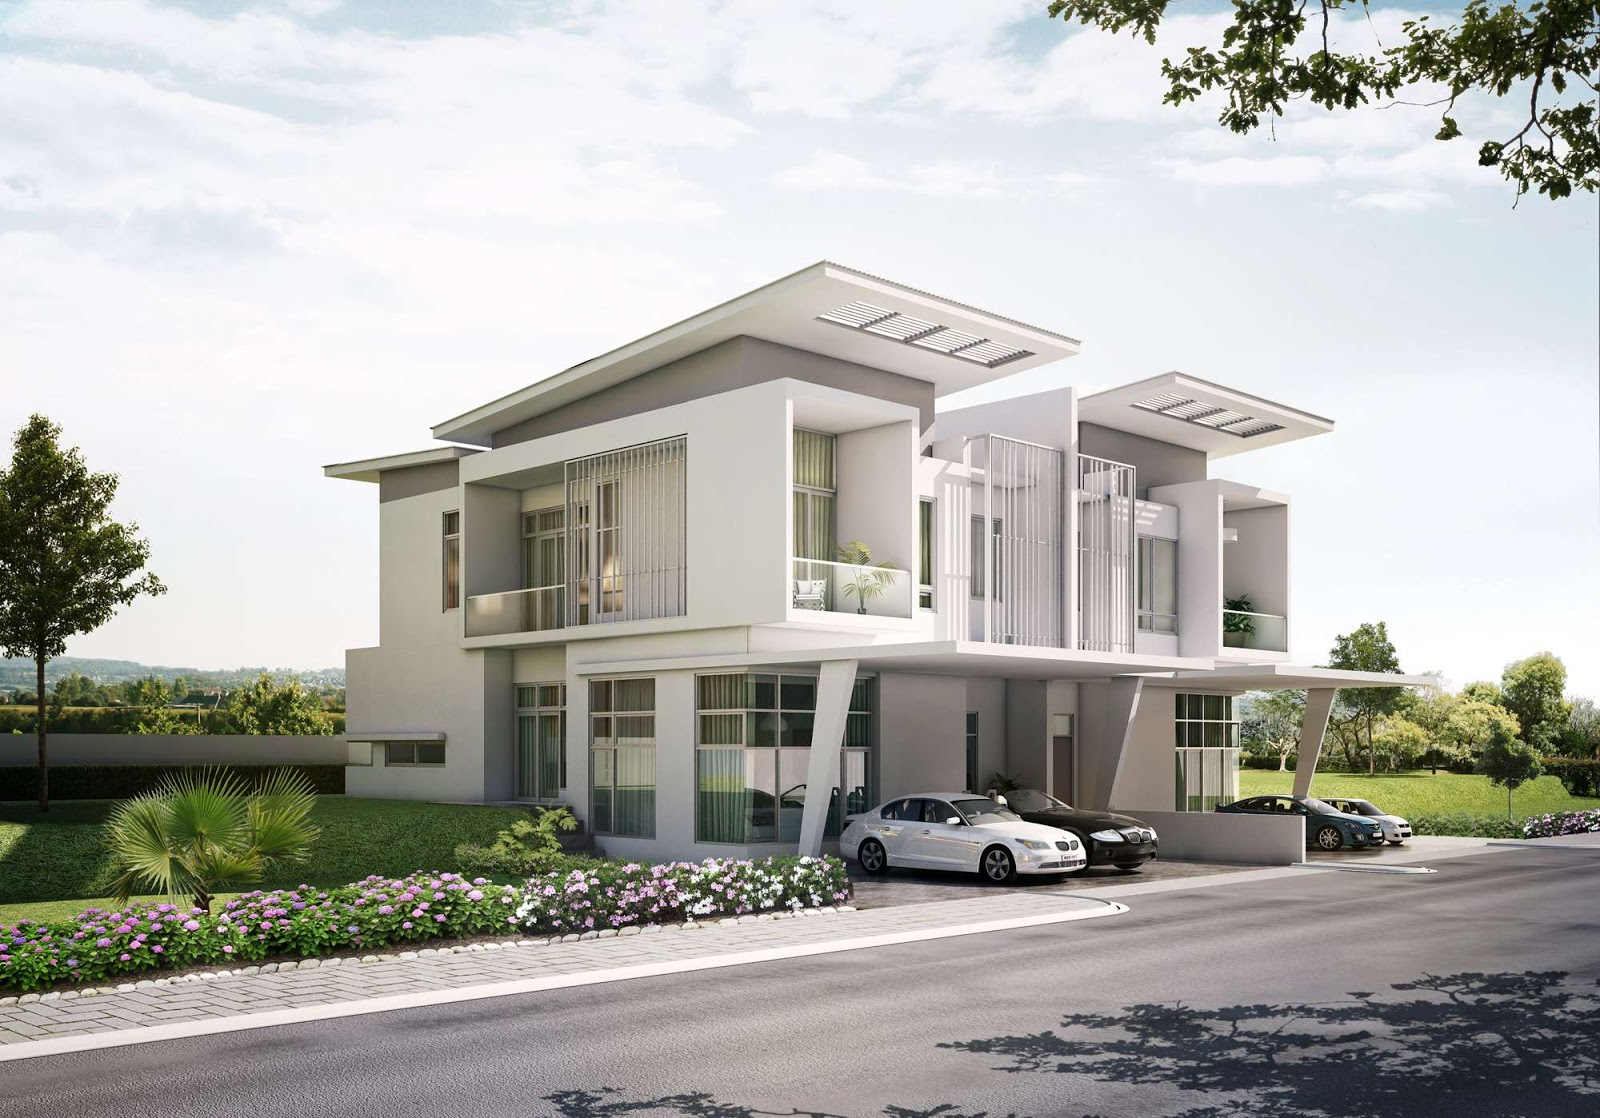 New home designs latest singapore modern homes exterior for Small homes exterior design